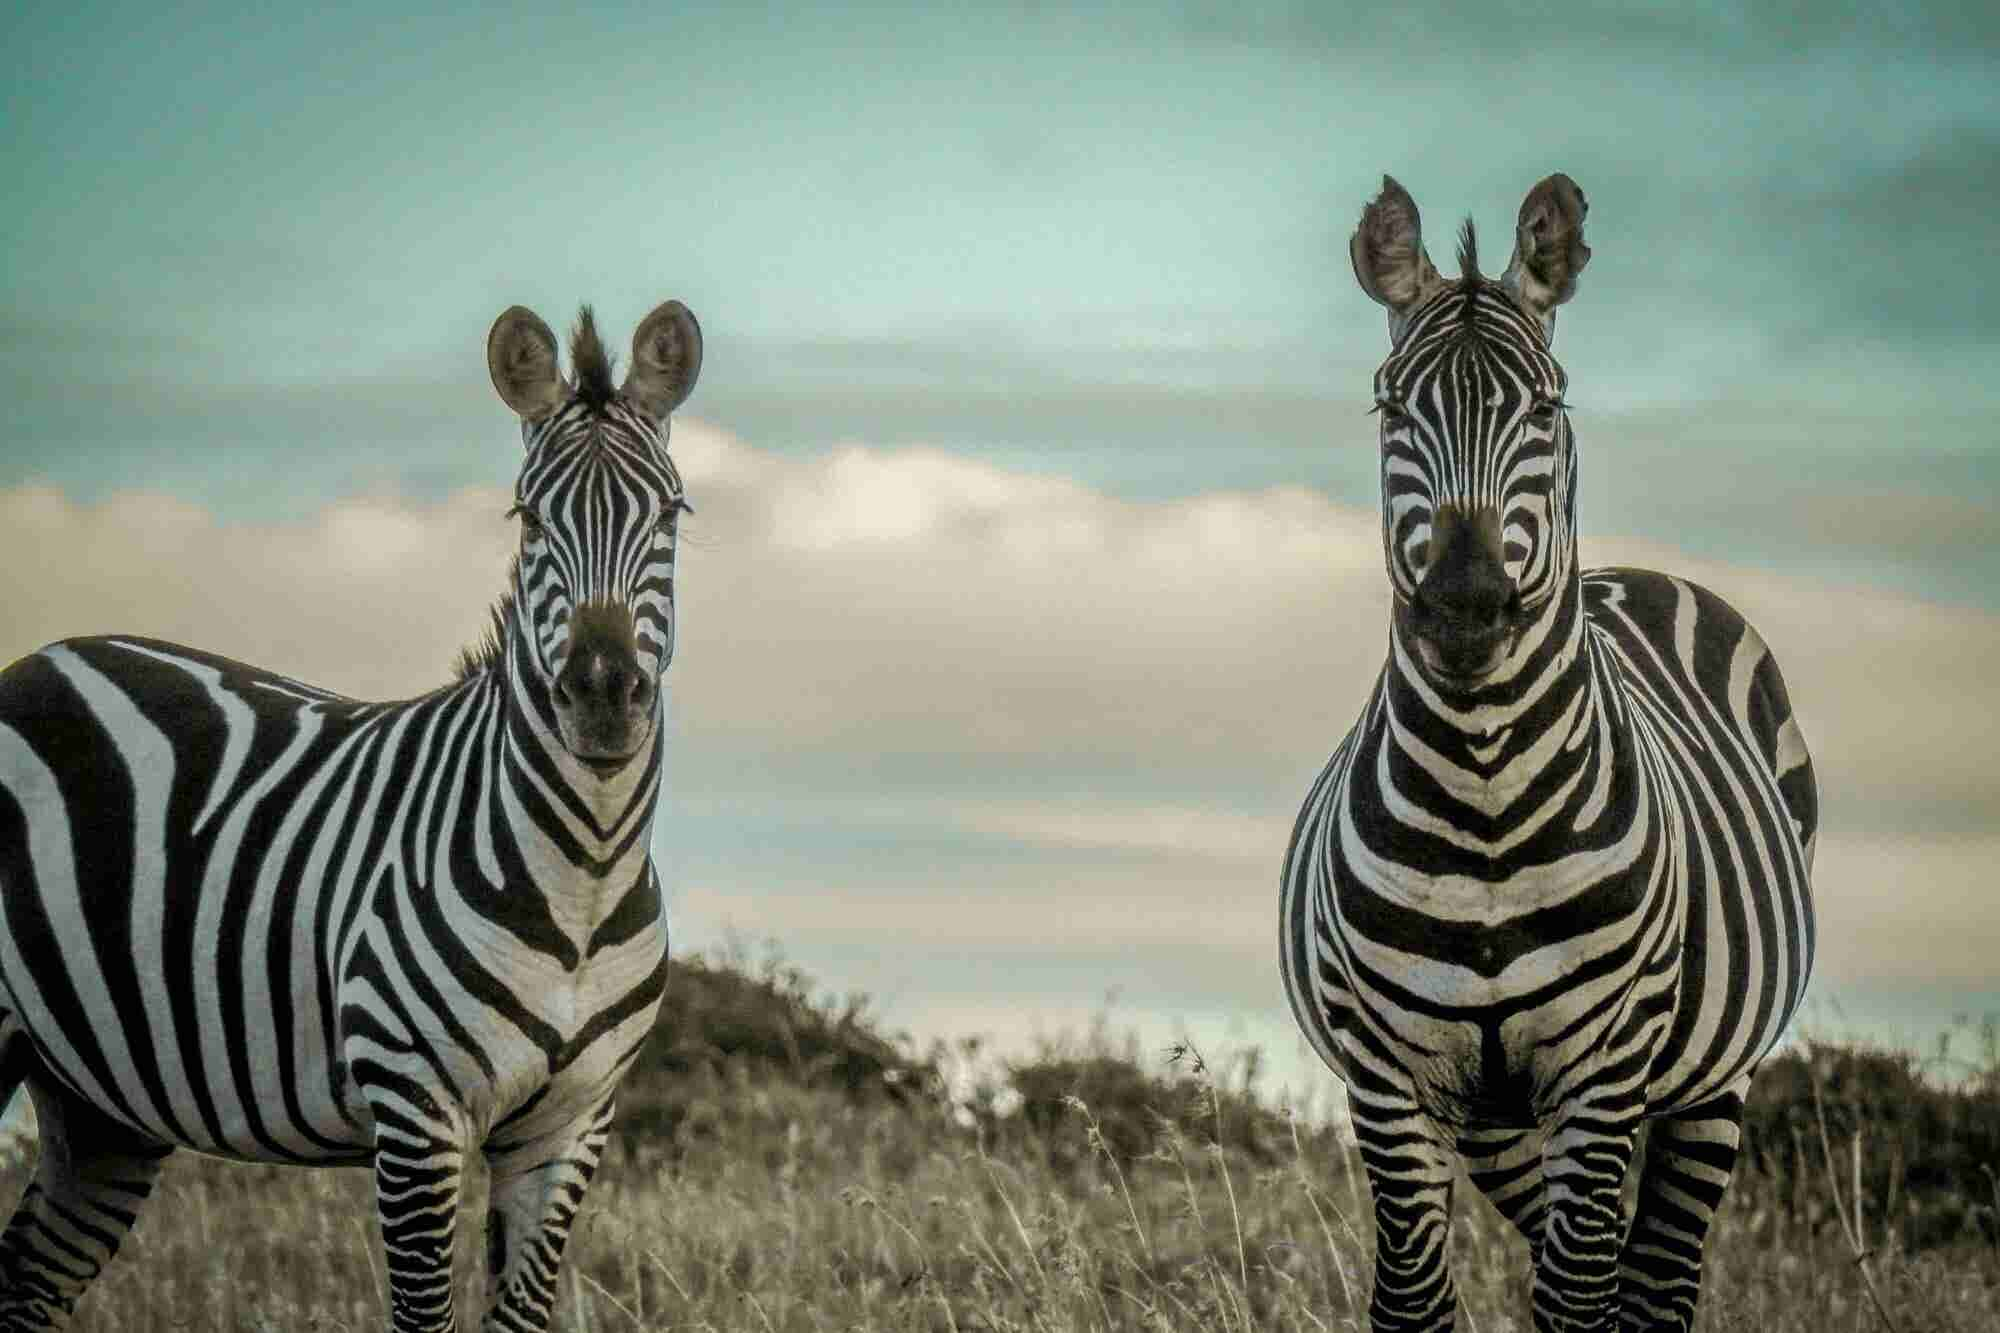 Forget Unicorns. We Need More 'Zebra' Startups.